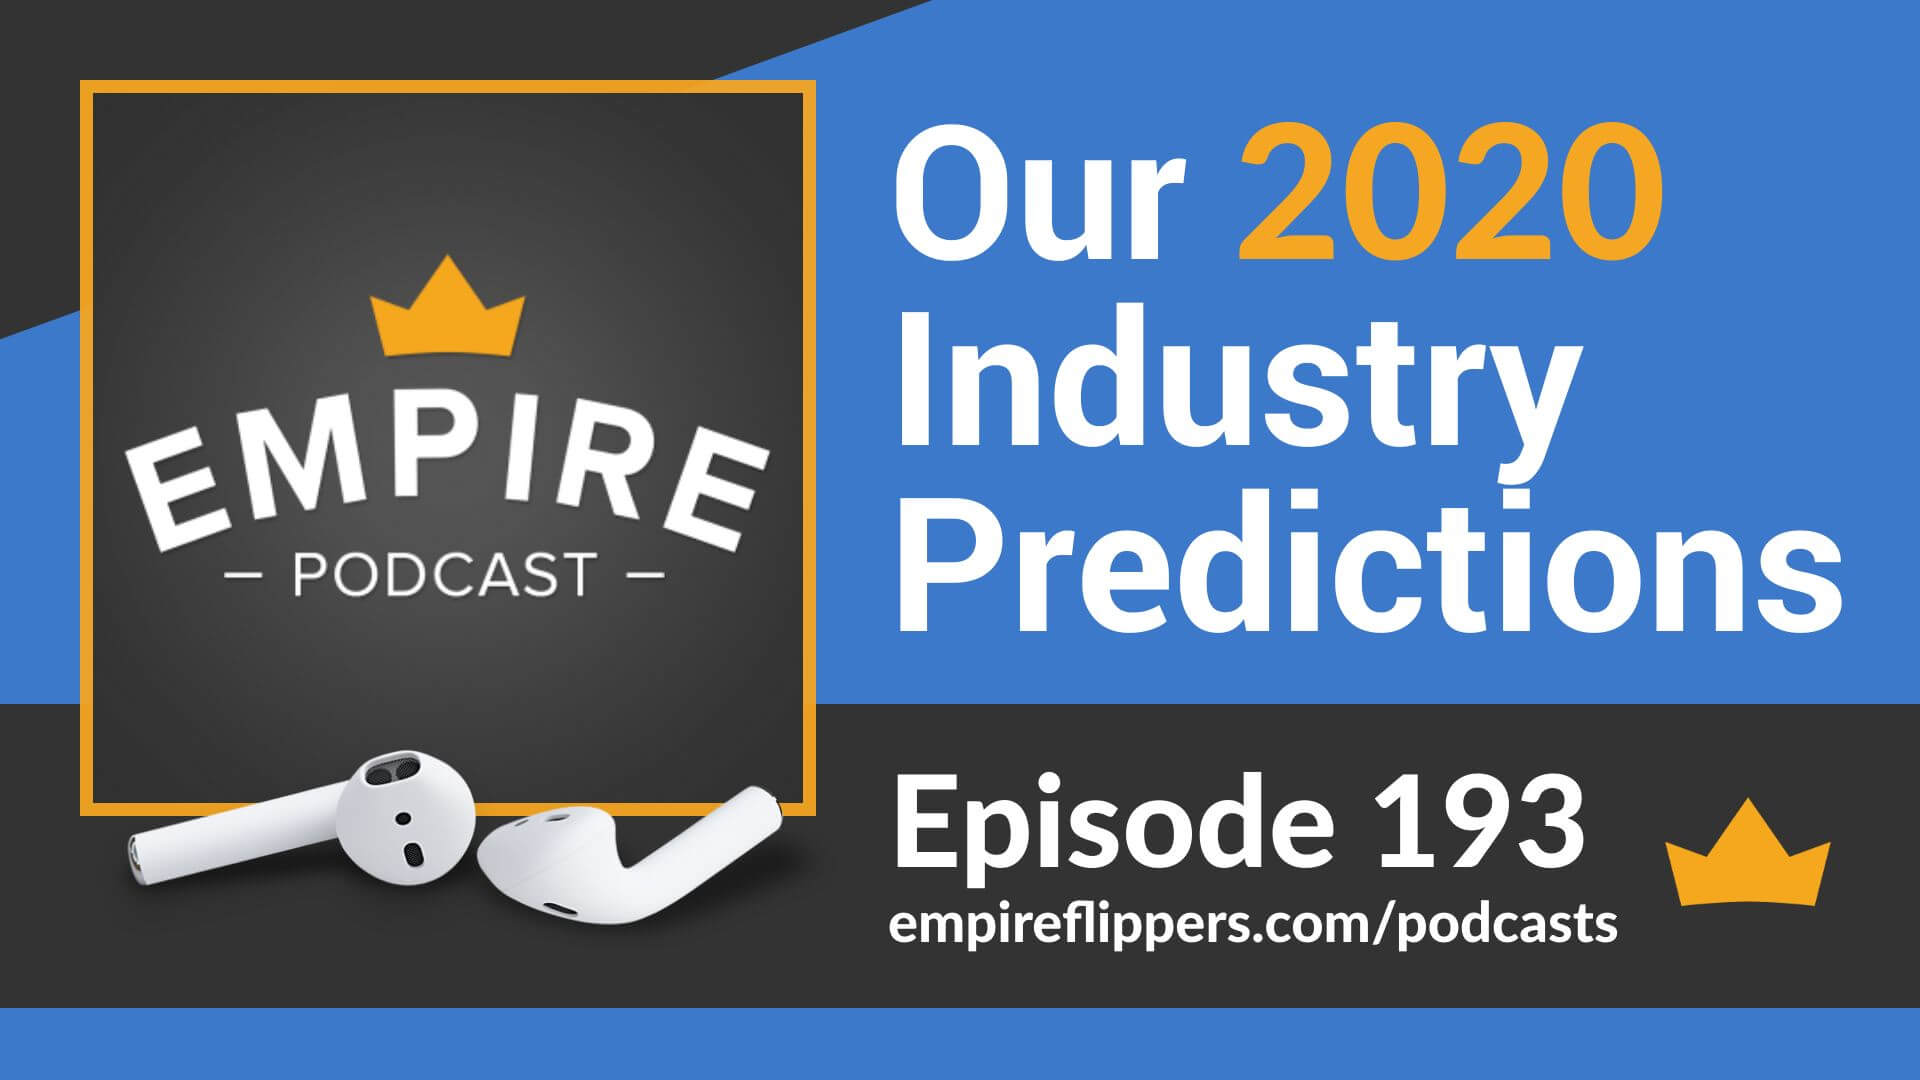 EFP 193 - Our 2020 Industry Predictions